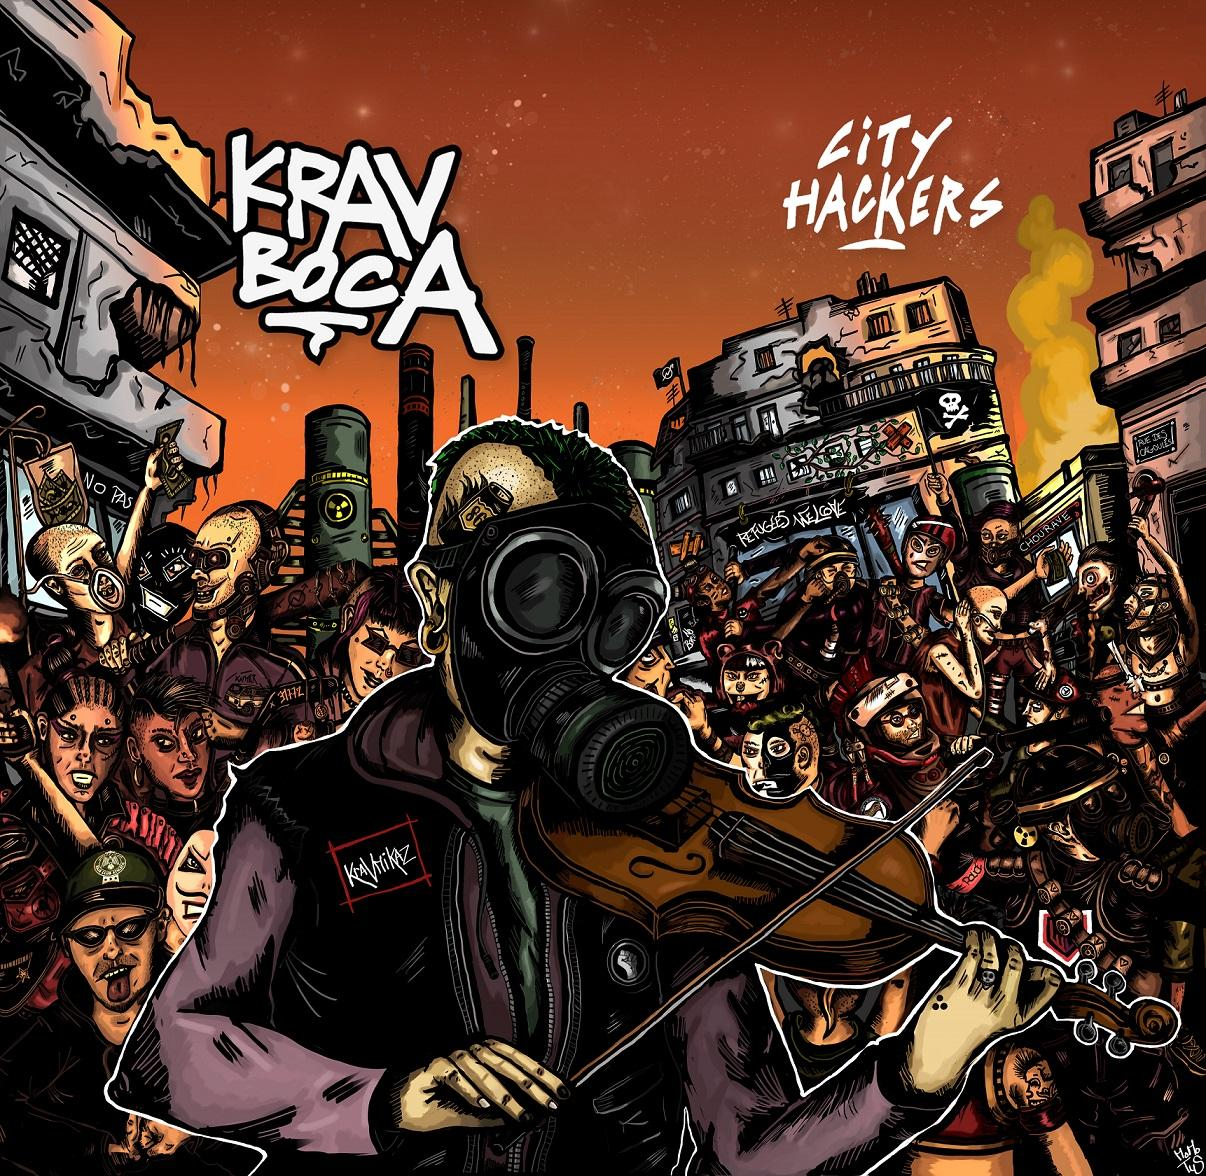 Chronique d'Album : KRAV BOCA (Rap/Punk) City Hakers (2020)